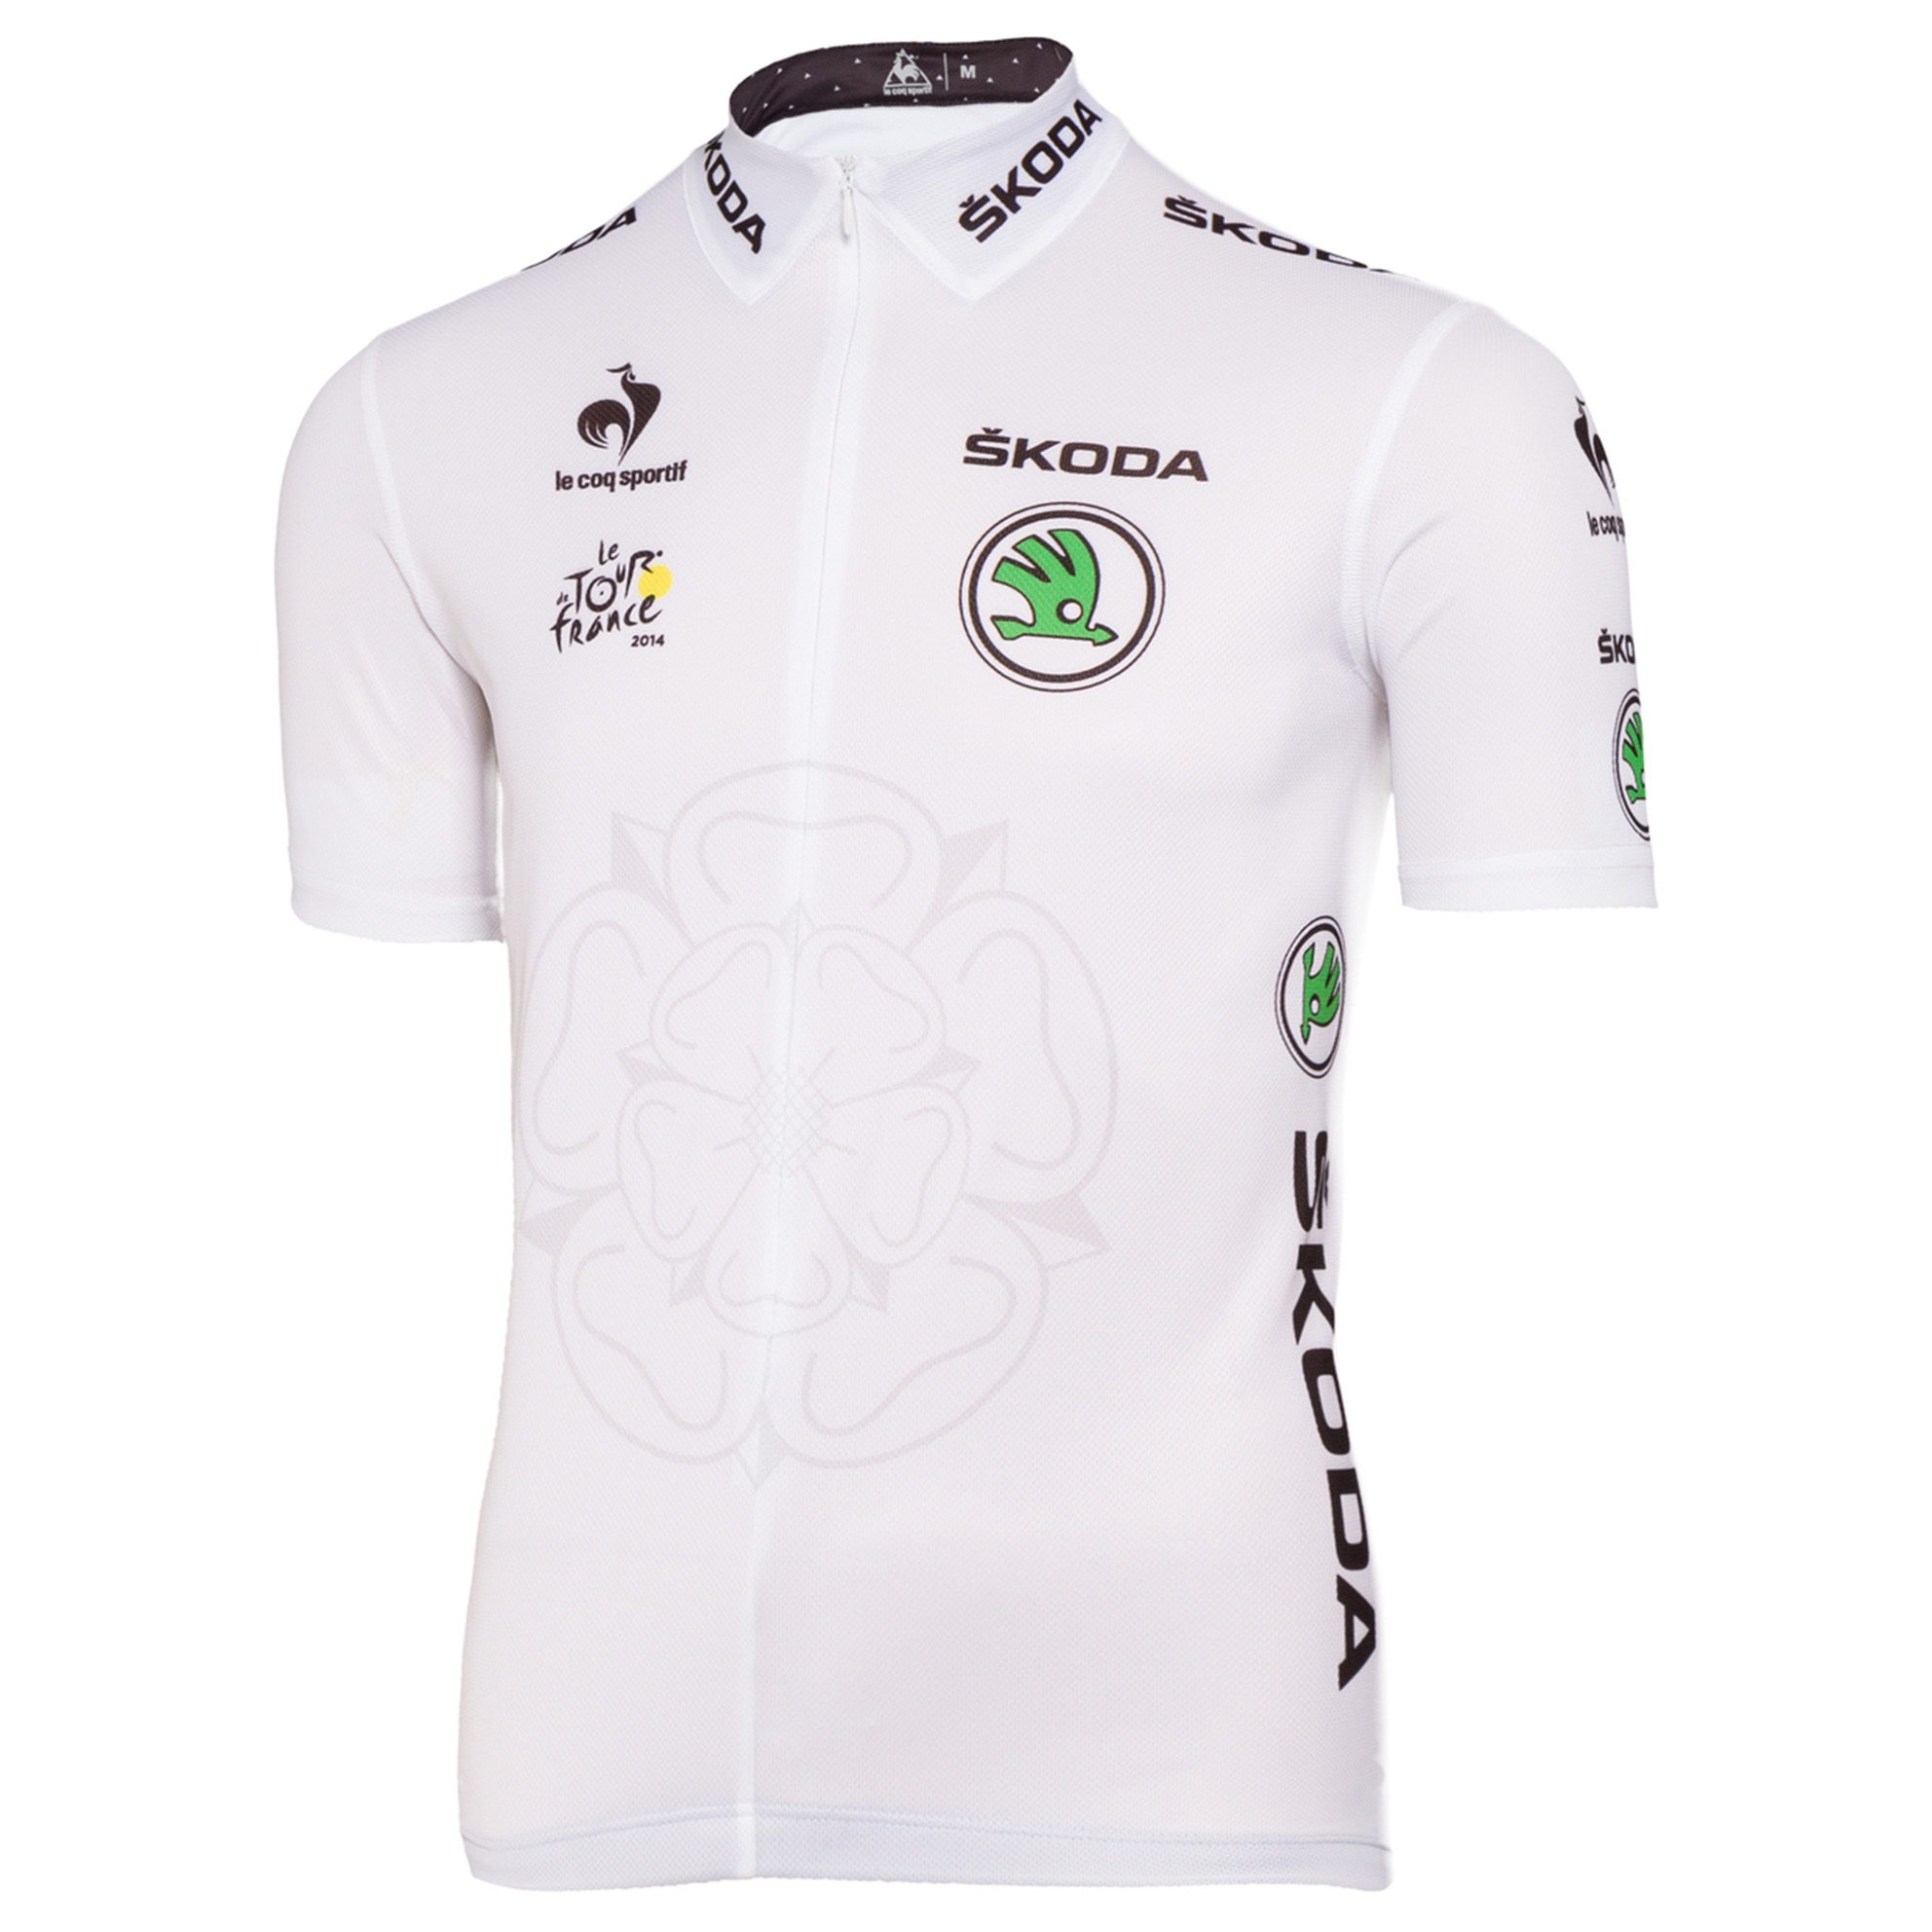 Le Tour de France Le Coq Sportif Replica Jersey - White